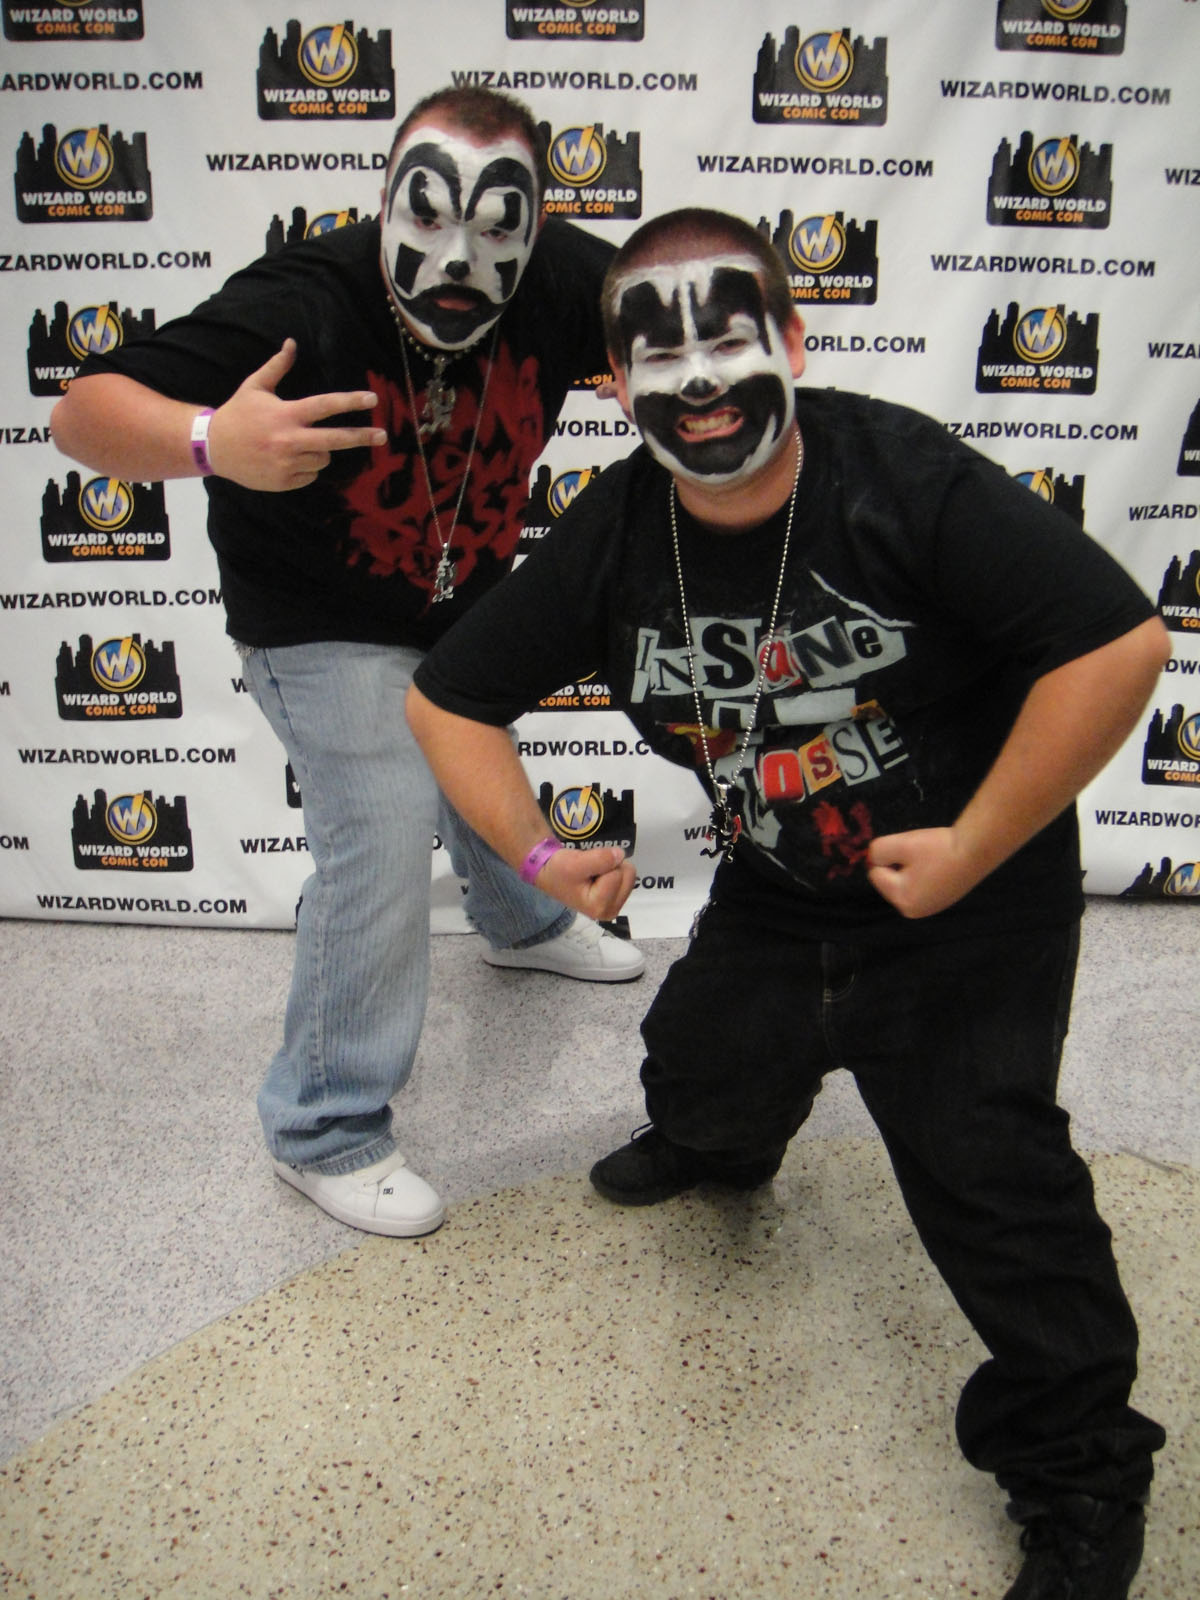 Juggalos  By The Conmunity - Pop Culture Geek from Los Angeles, CA, USA (Wizard World Anaheim 2011 - Insane Clown Posse) [CC BY 2.0 (https://creativecommons.org/licenses/by/2.0)], via Wikimedia Commons